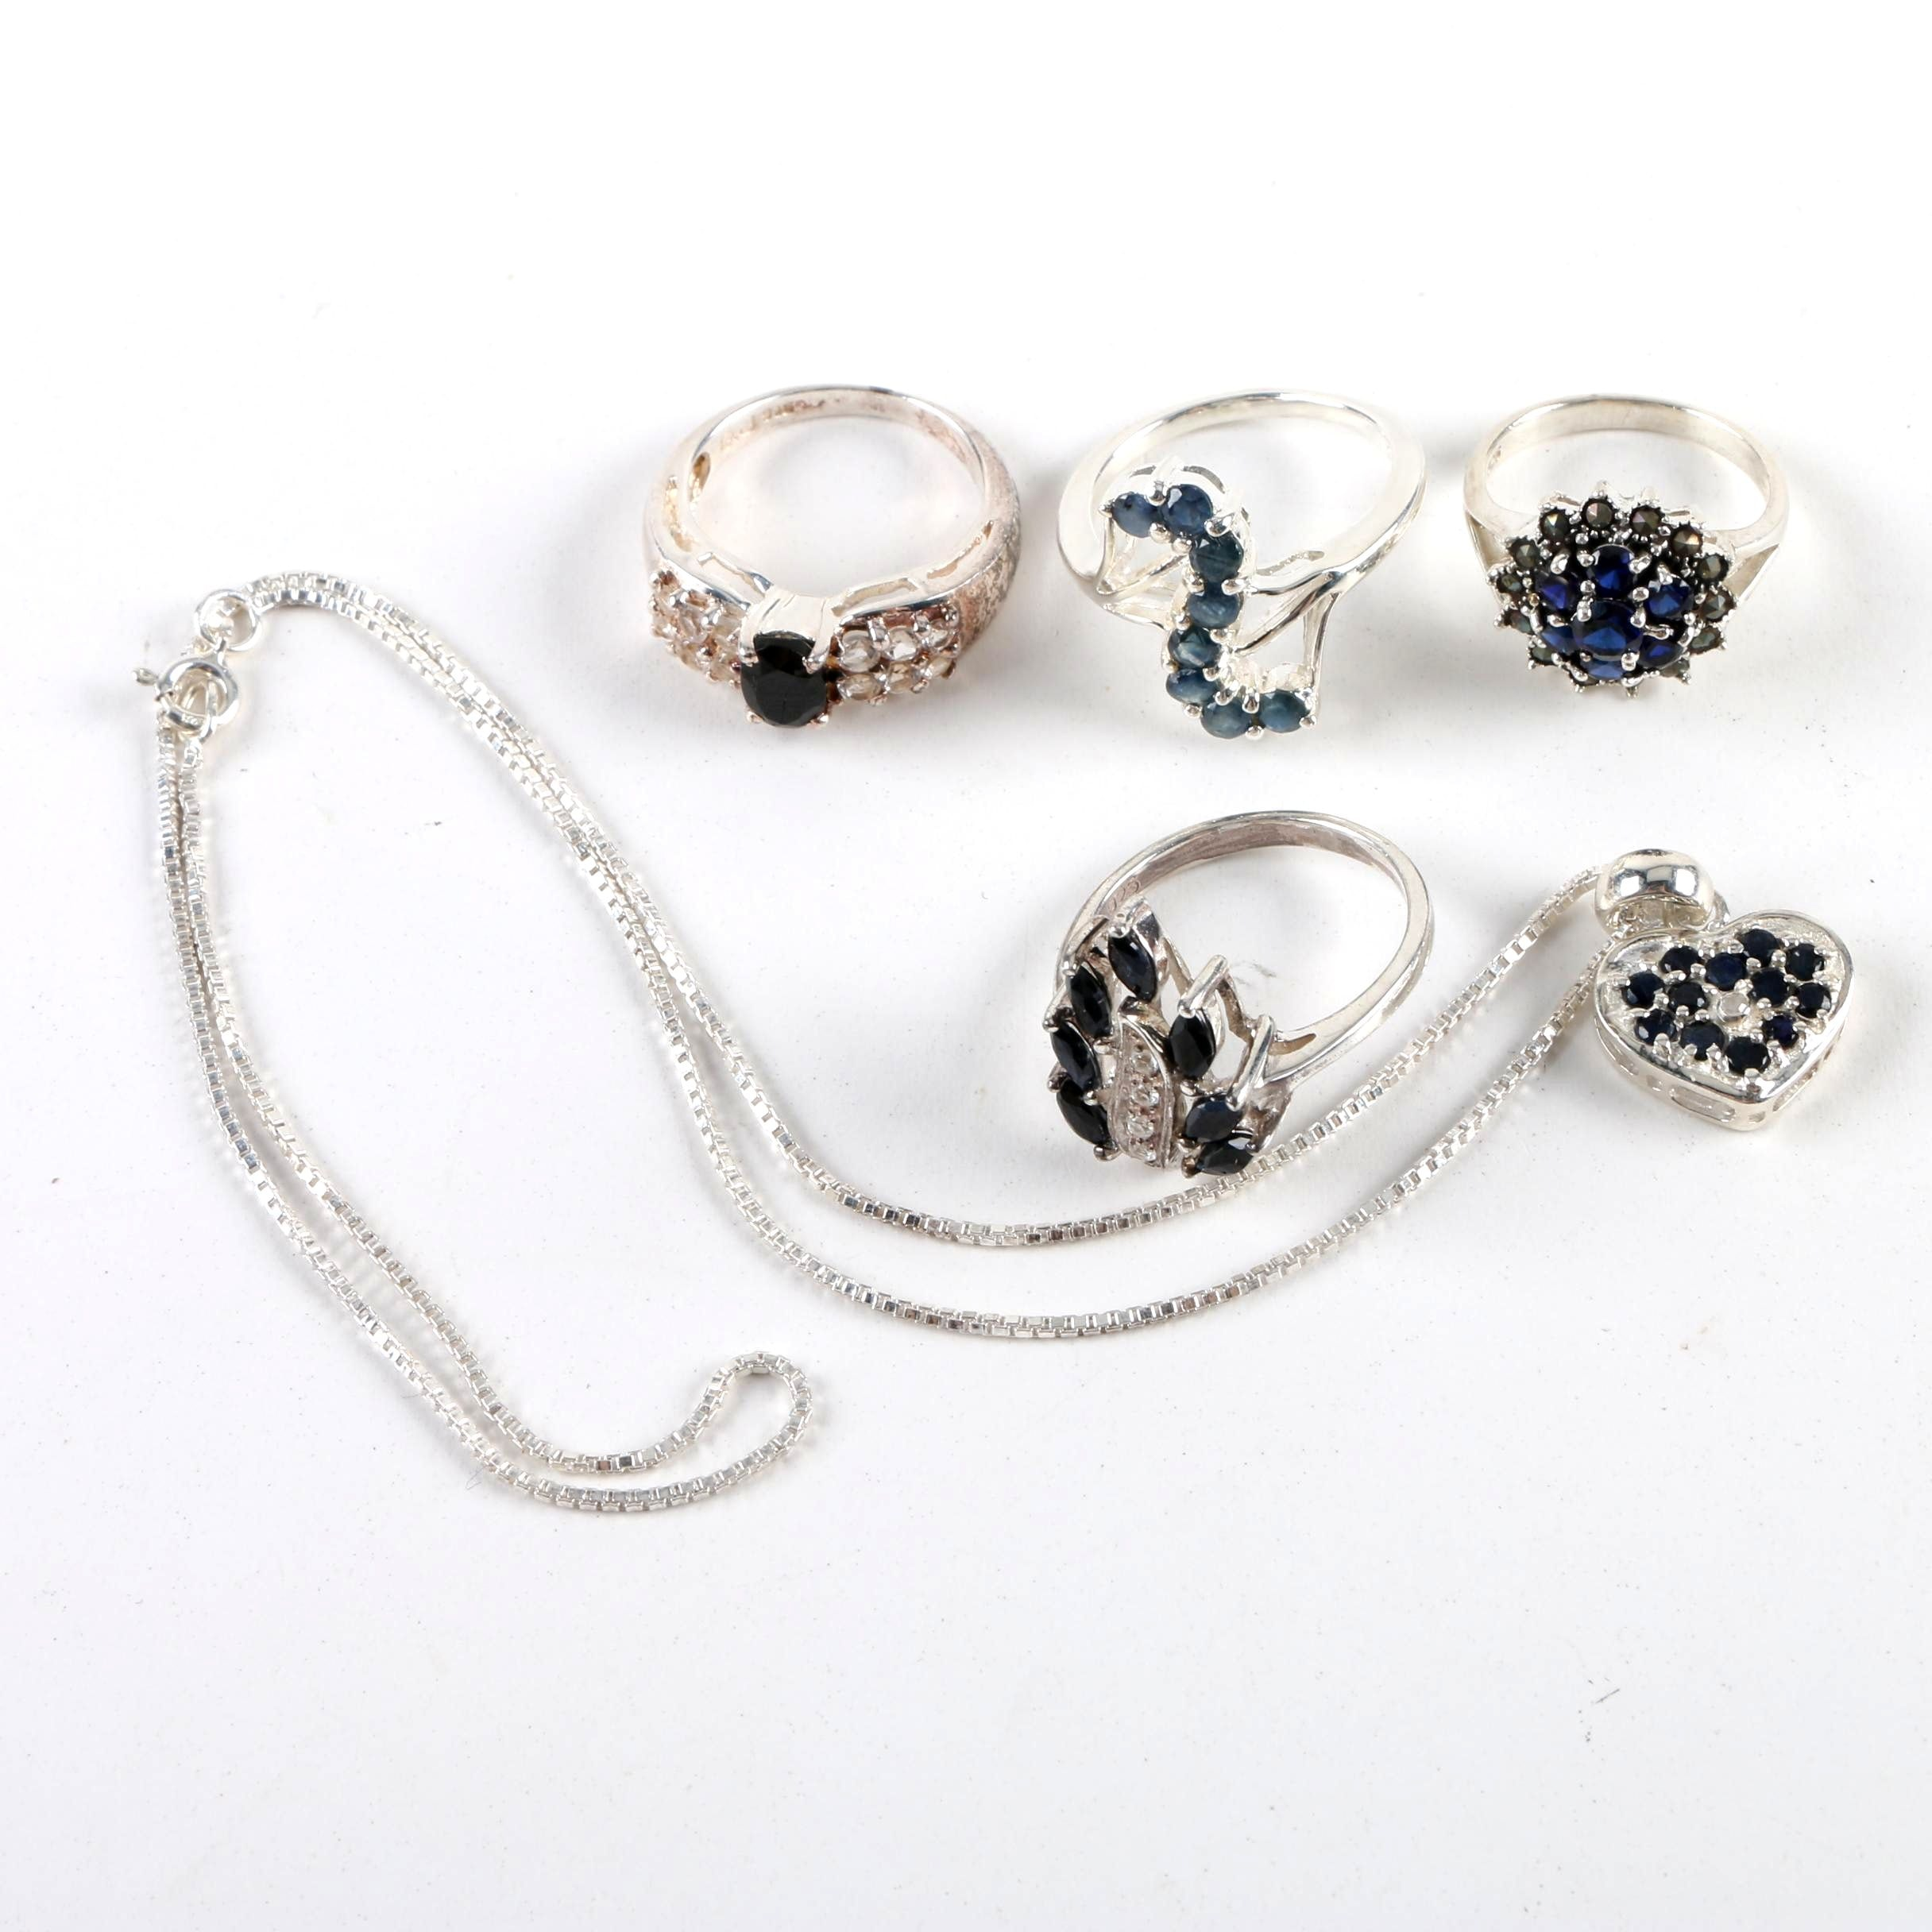 Sterling Silver Jewelry Selection Including Synthetic Sapphires and a Diamond